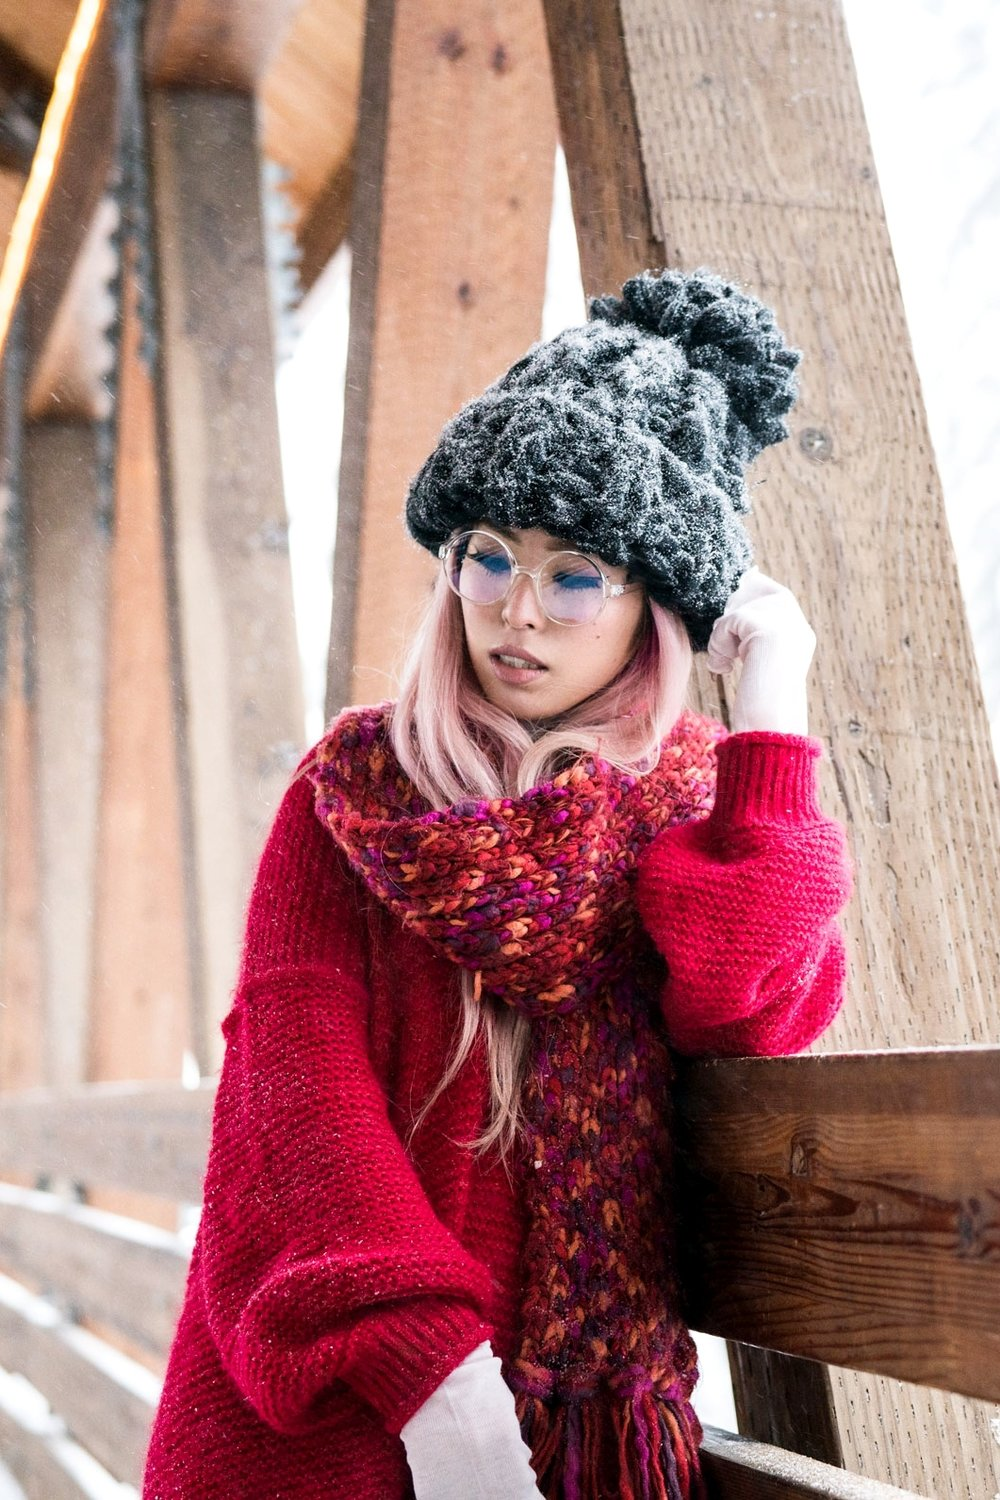 H&M Multi Colored Scarf, Transparent Clear Lens Glasses, Free people All Mine Sweater, Free People Modern Cuff Layering Top, Free People Ace High Rise Jeans, Free People Bobbi Chunky Pom Beanie, EGO Ankle Boots, Aika's Love Closet, Seattle Fashion Blogger from Japan, Pink Hair2